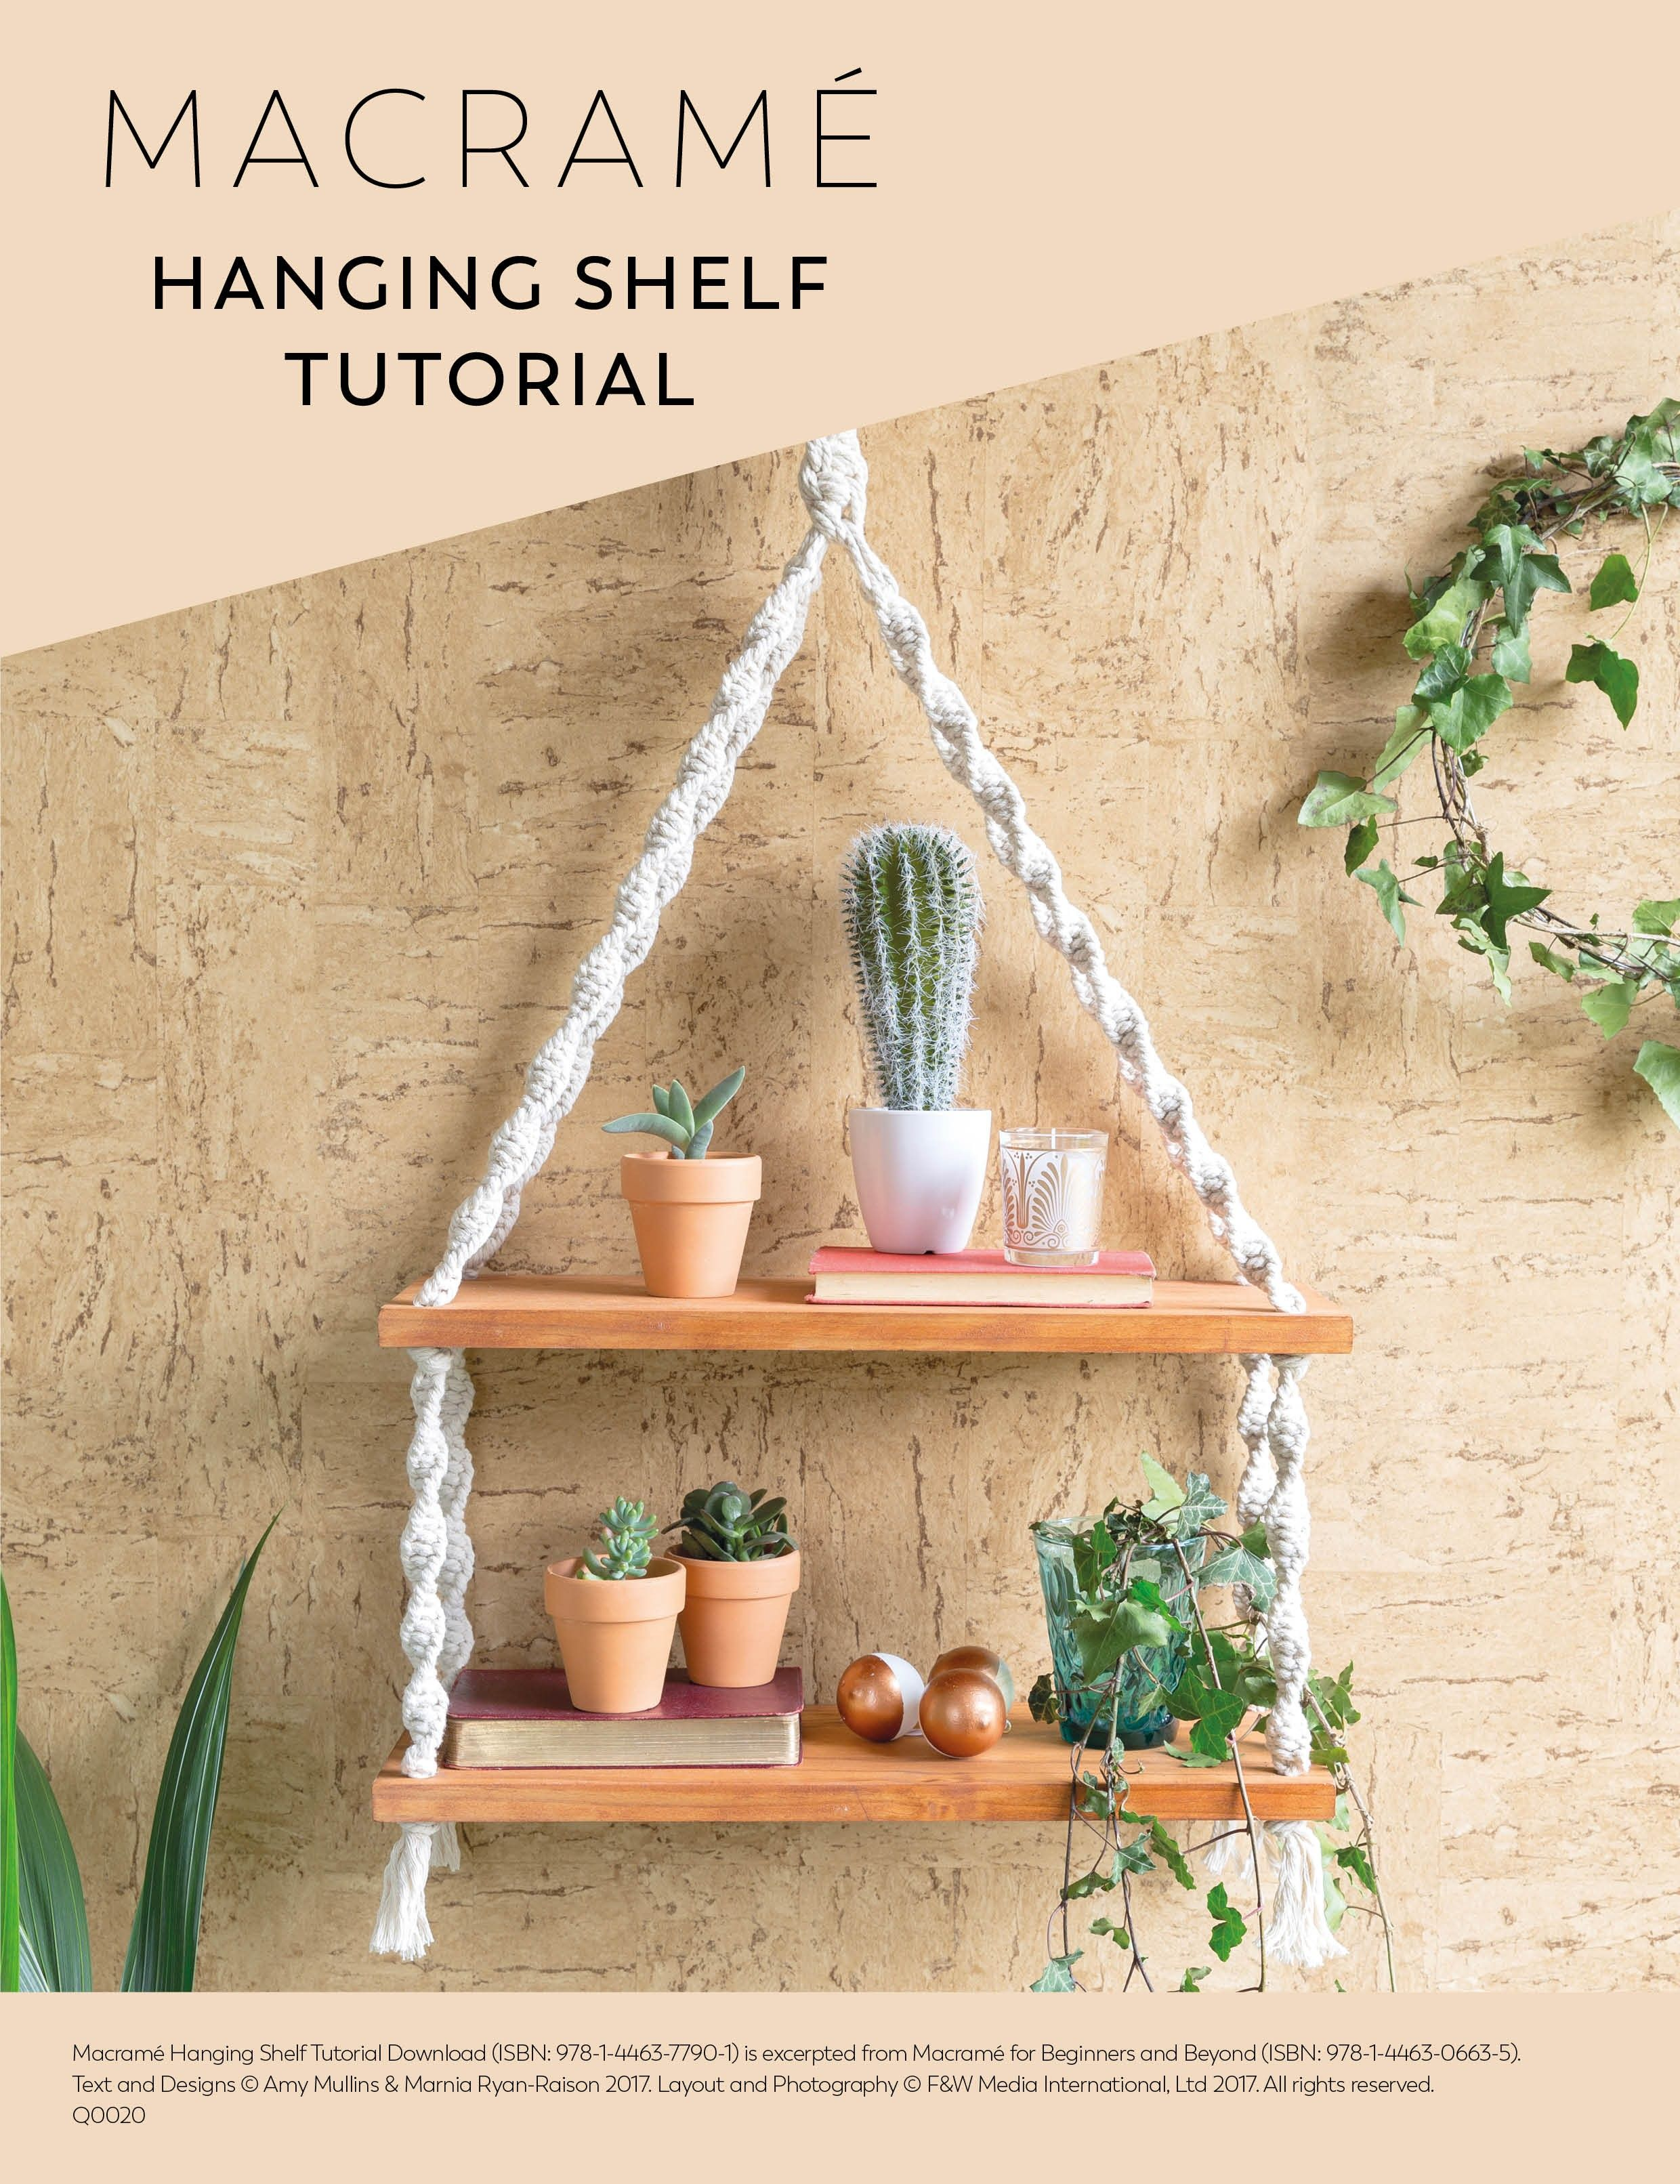 Create Impressive Unique Macrame Hanging Shelves With This